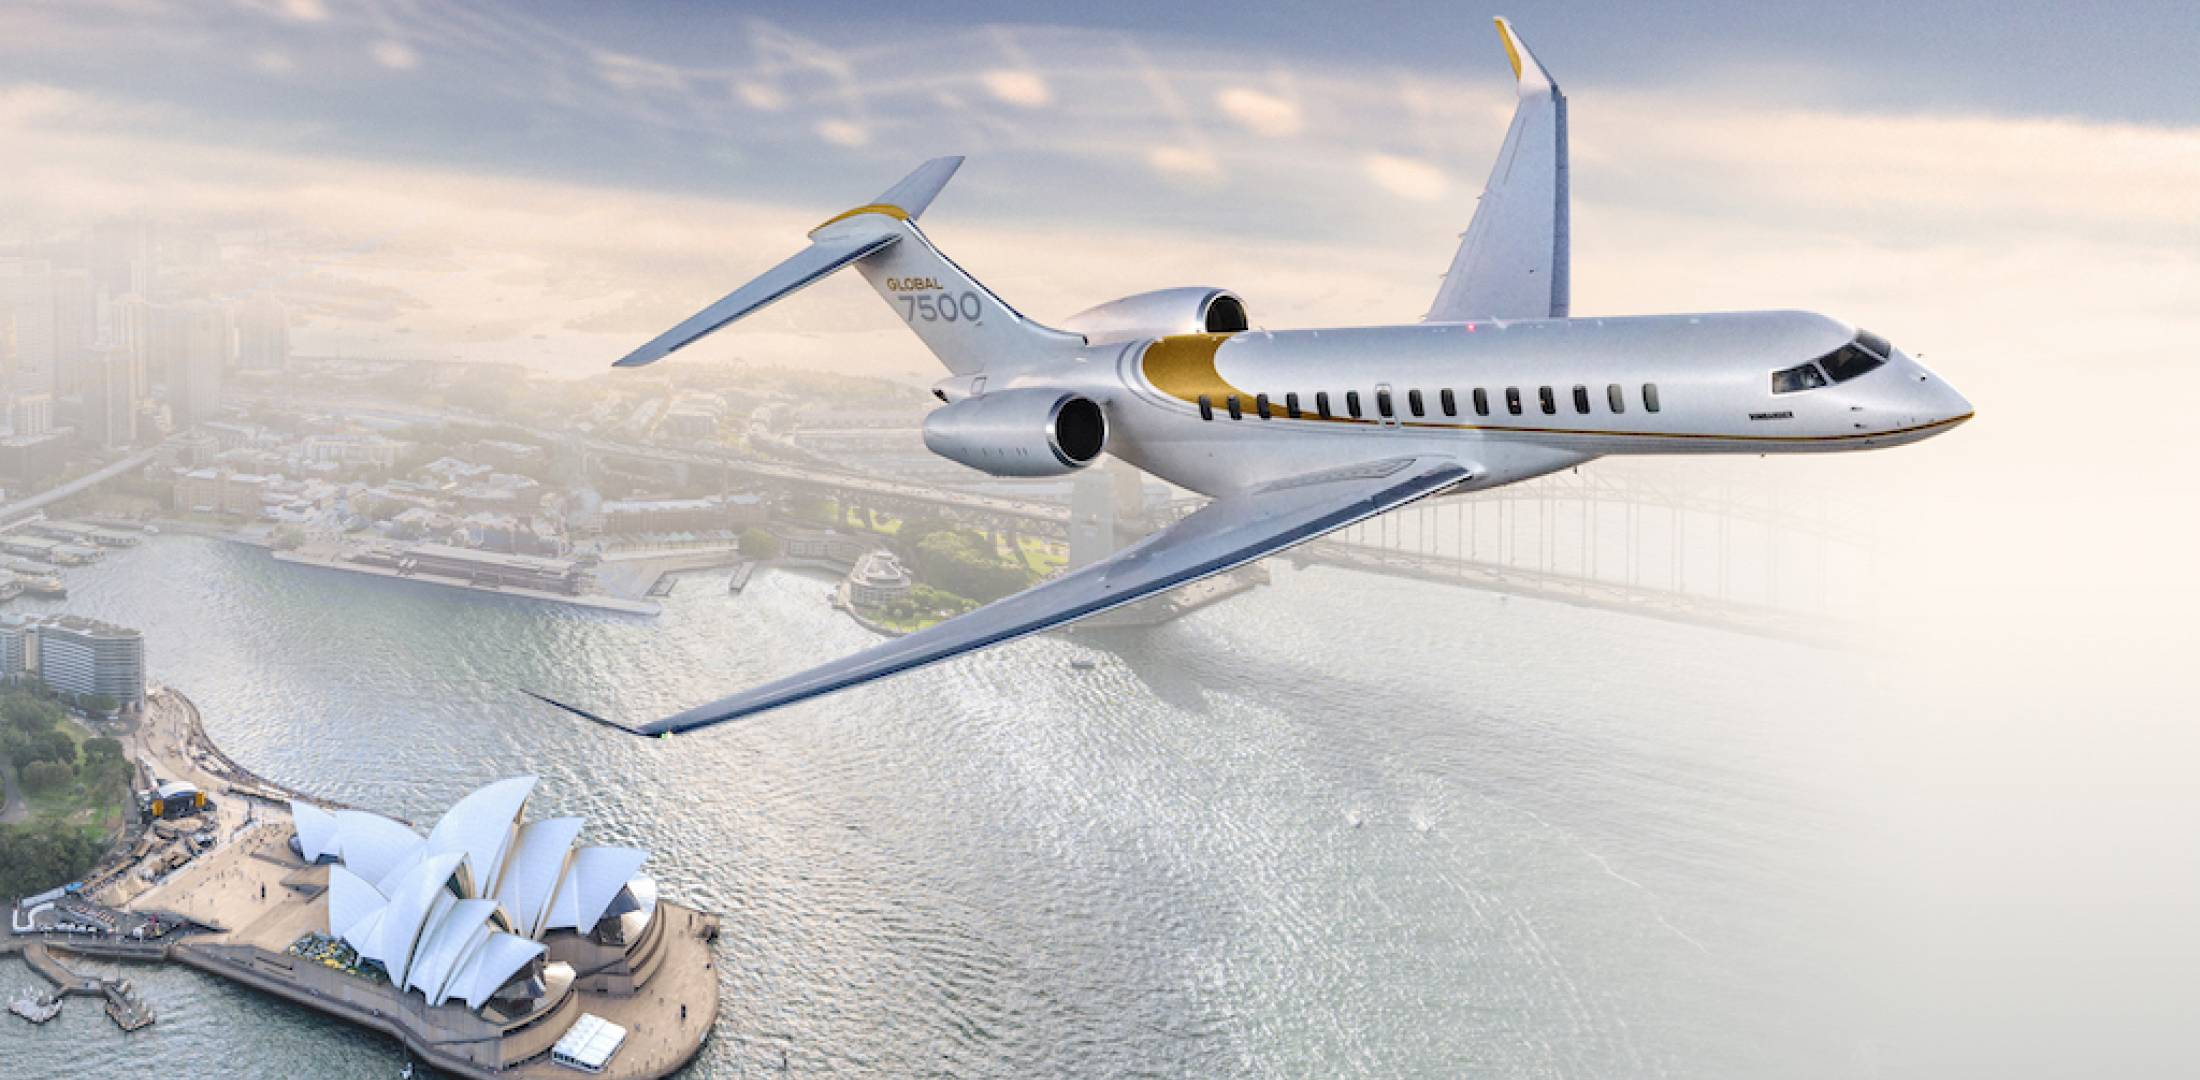 Bombardier Global 7500 (Photo: Bombardier)